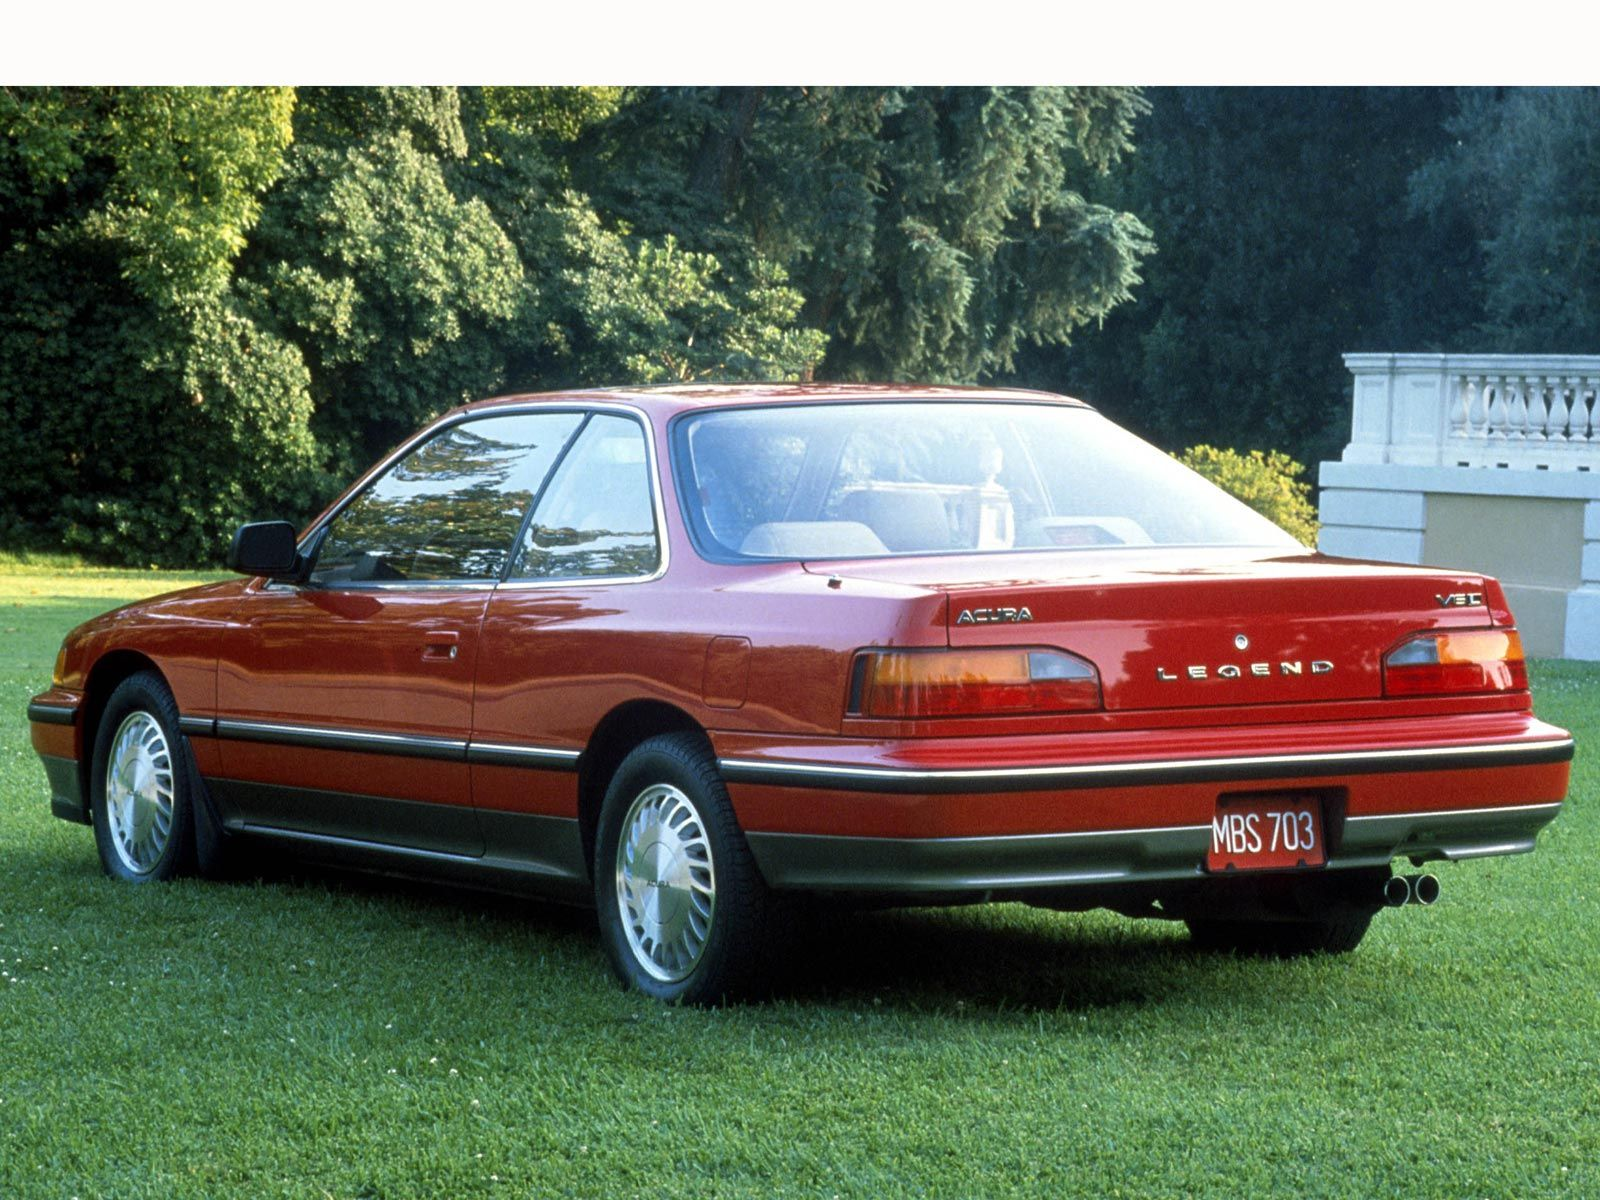 1989 Acura Legend Coupe  My favorite car of all time  Cars from